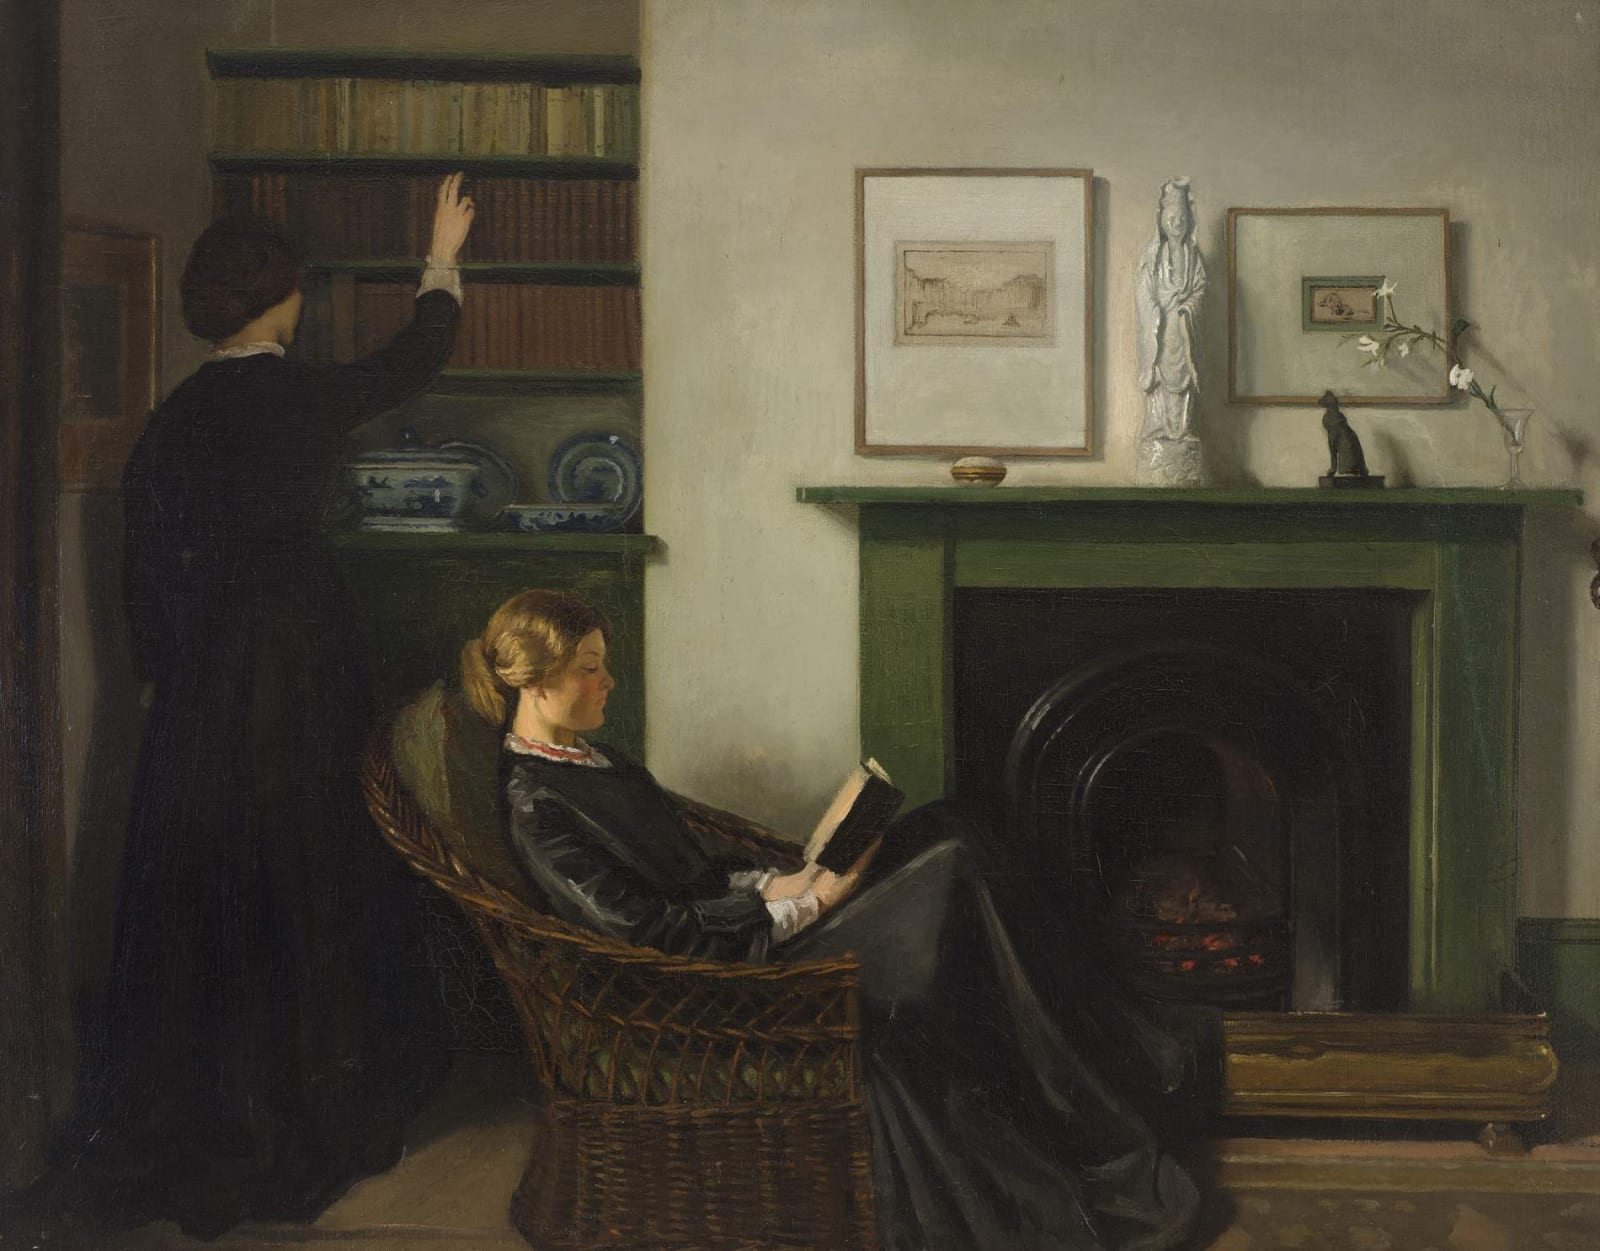 William Rothenstein (1872-1945) The Browning Readers 1900 Oil on canvas 76 x 96.5 cm Bradford Museums and Galleries To see and discover more about this artist click here